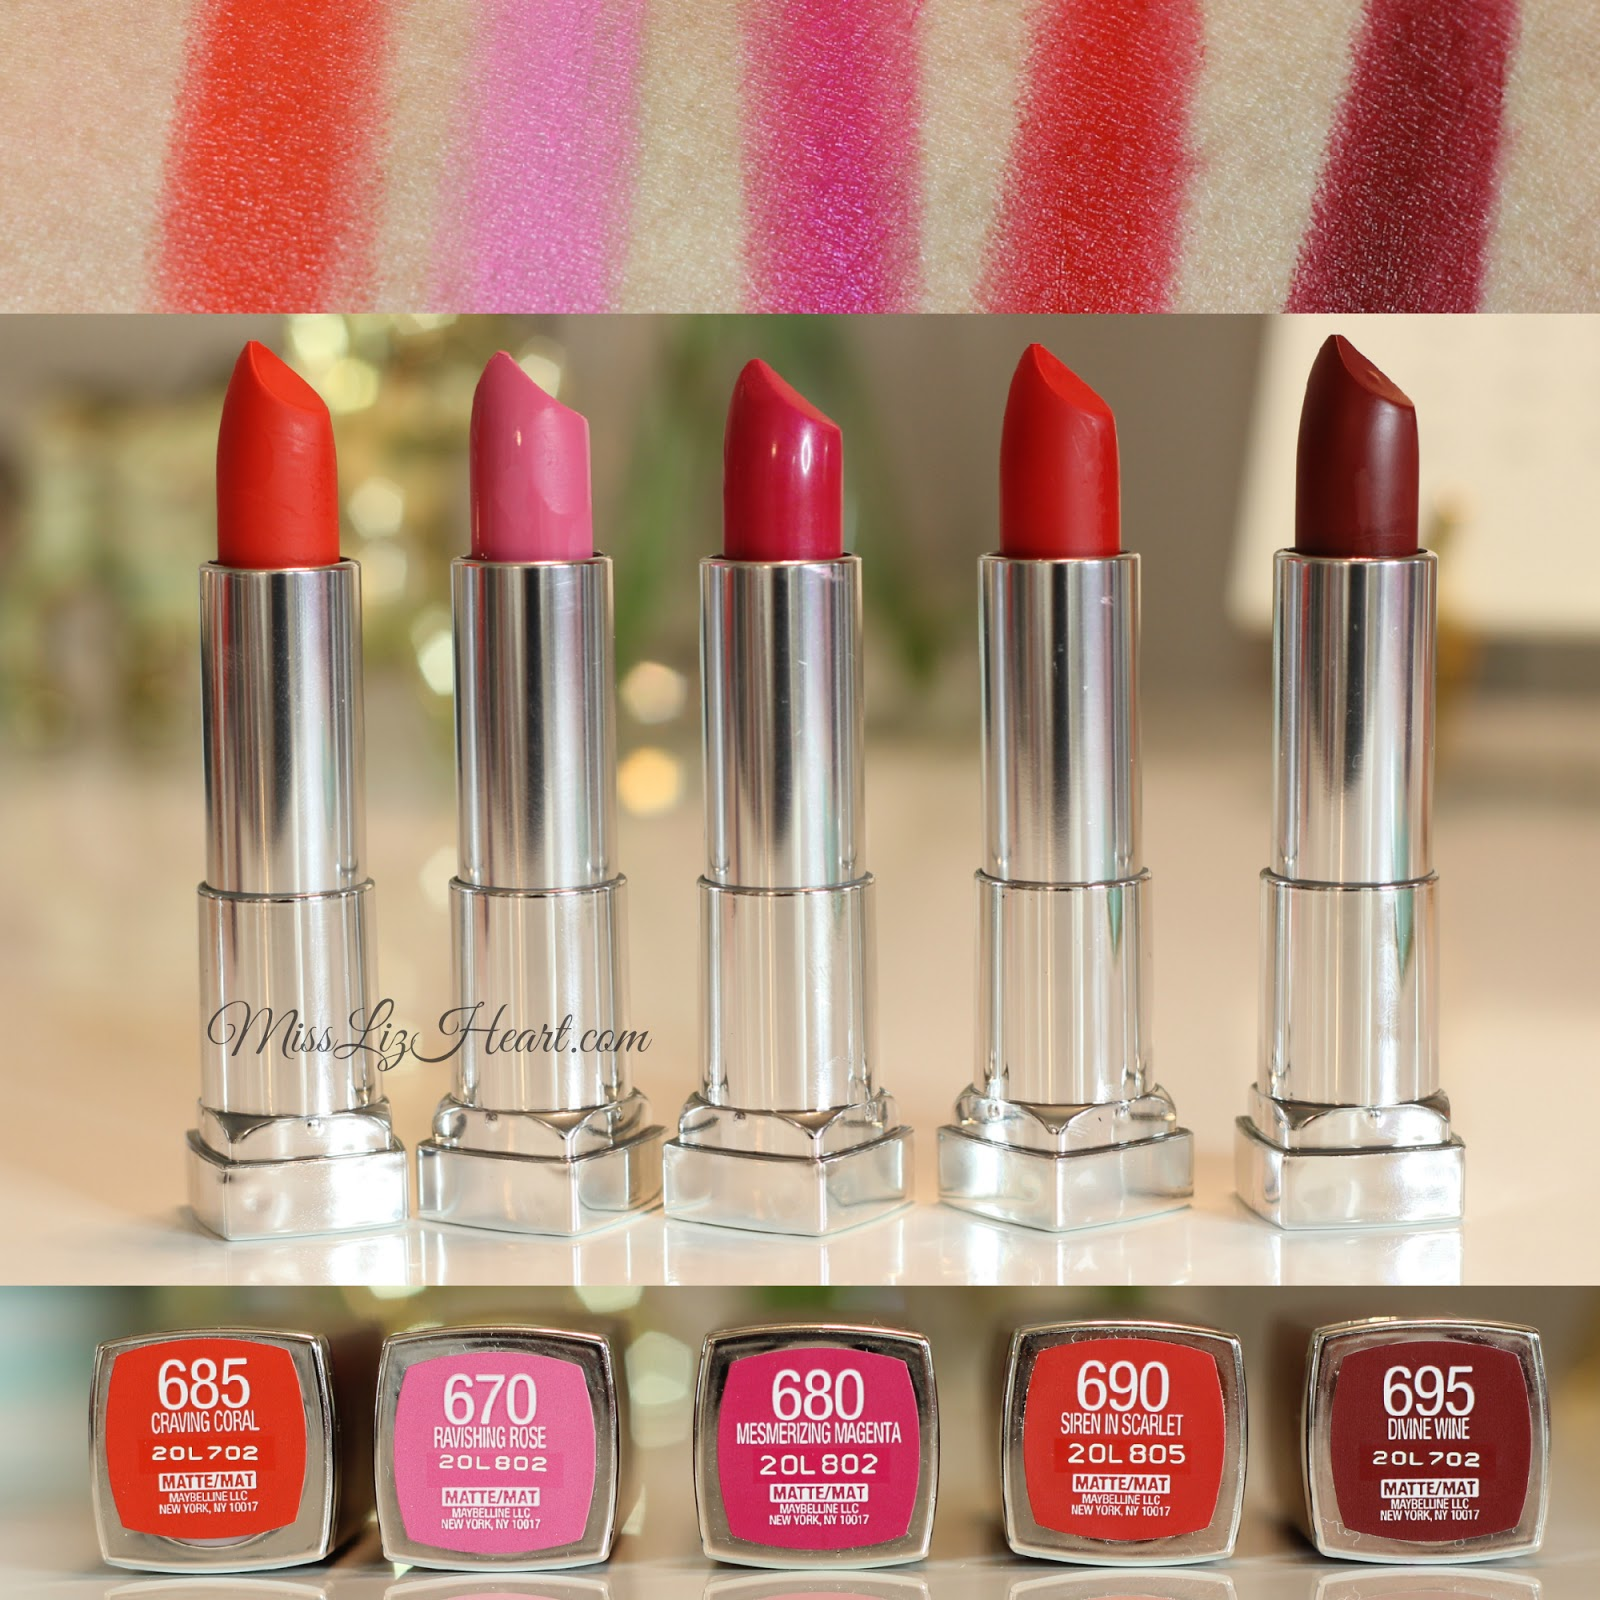 Son Maybelline Color Sensational Creamy Matte Lipstick